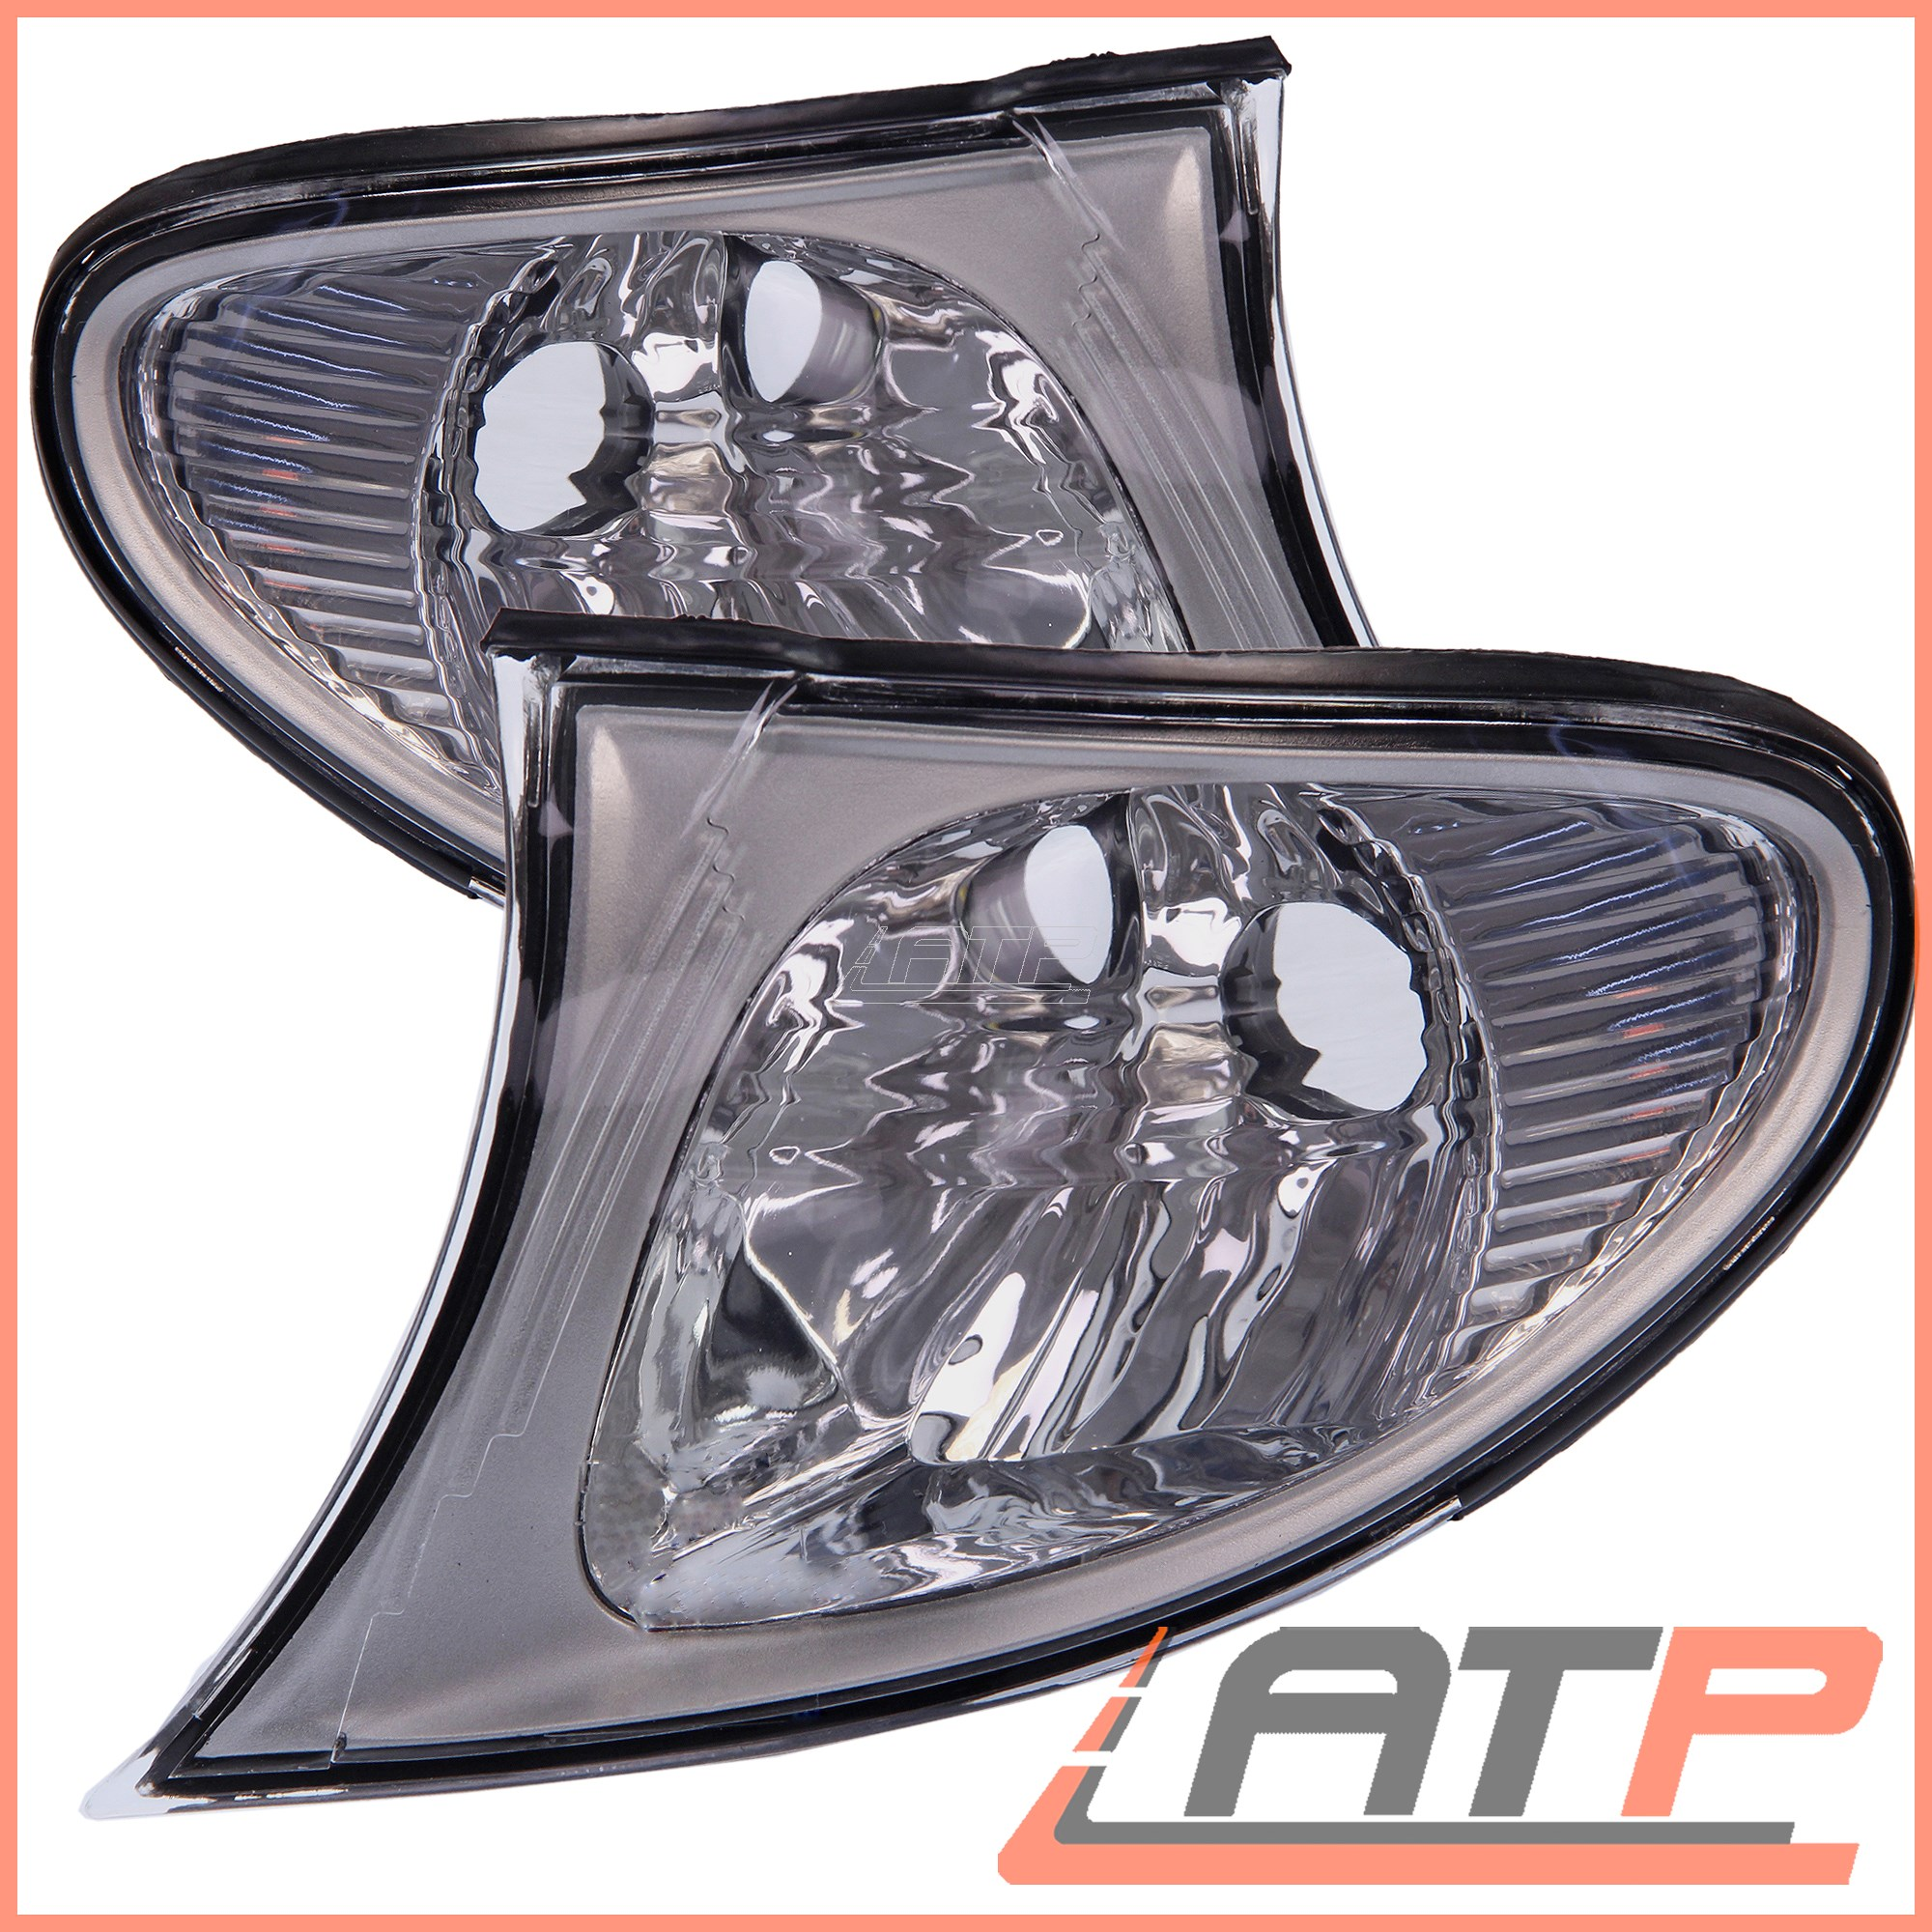 2X-INDICATOR-TURN-SIGNAL-CLEAR-FRONT-LEFT-RIGHT-BMW-3-SERIES-E46